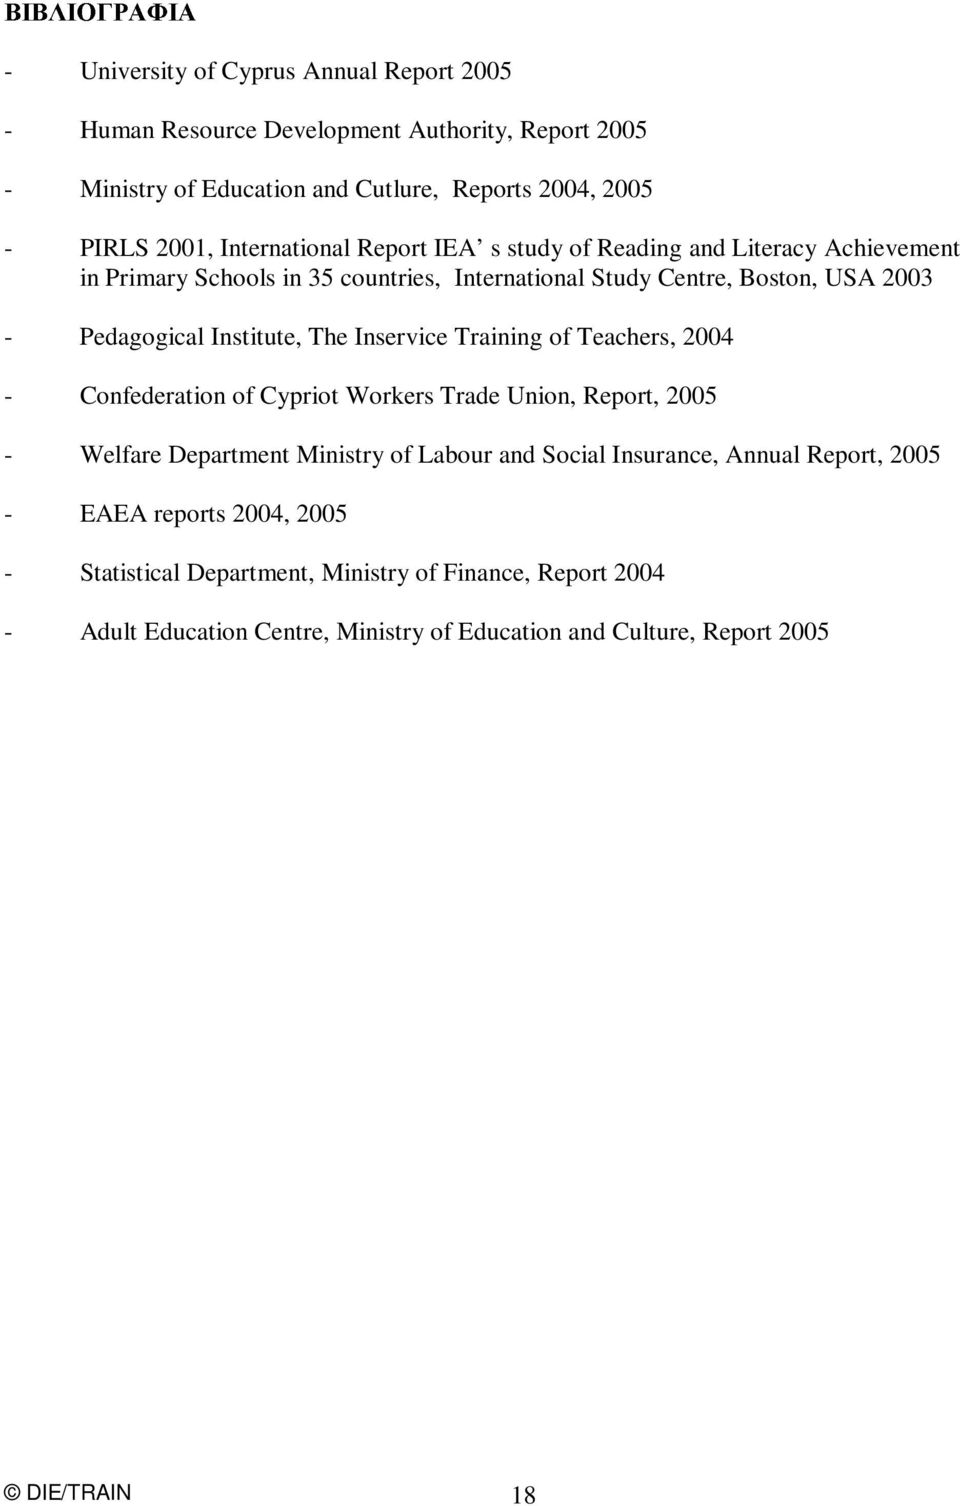 The Inservice Training of Teachers, 2004 - Confederation of Cypriot Workers Trade Union, Report, 2005 - Welfare Department Ministry of Labour and Social Insurance, Annual